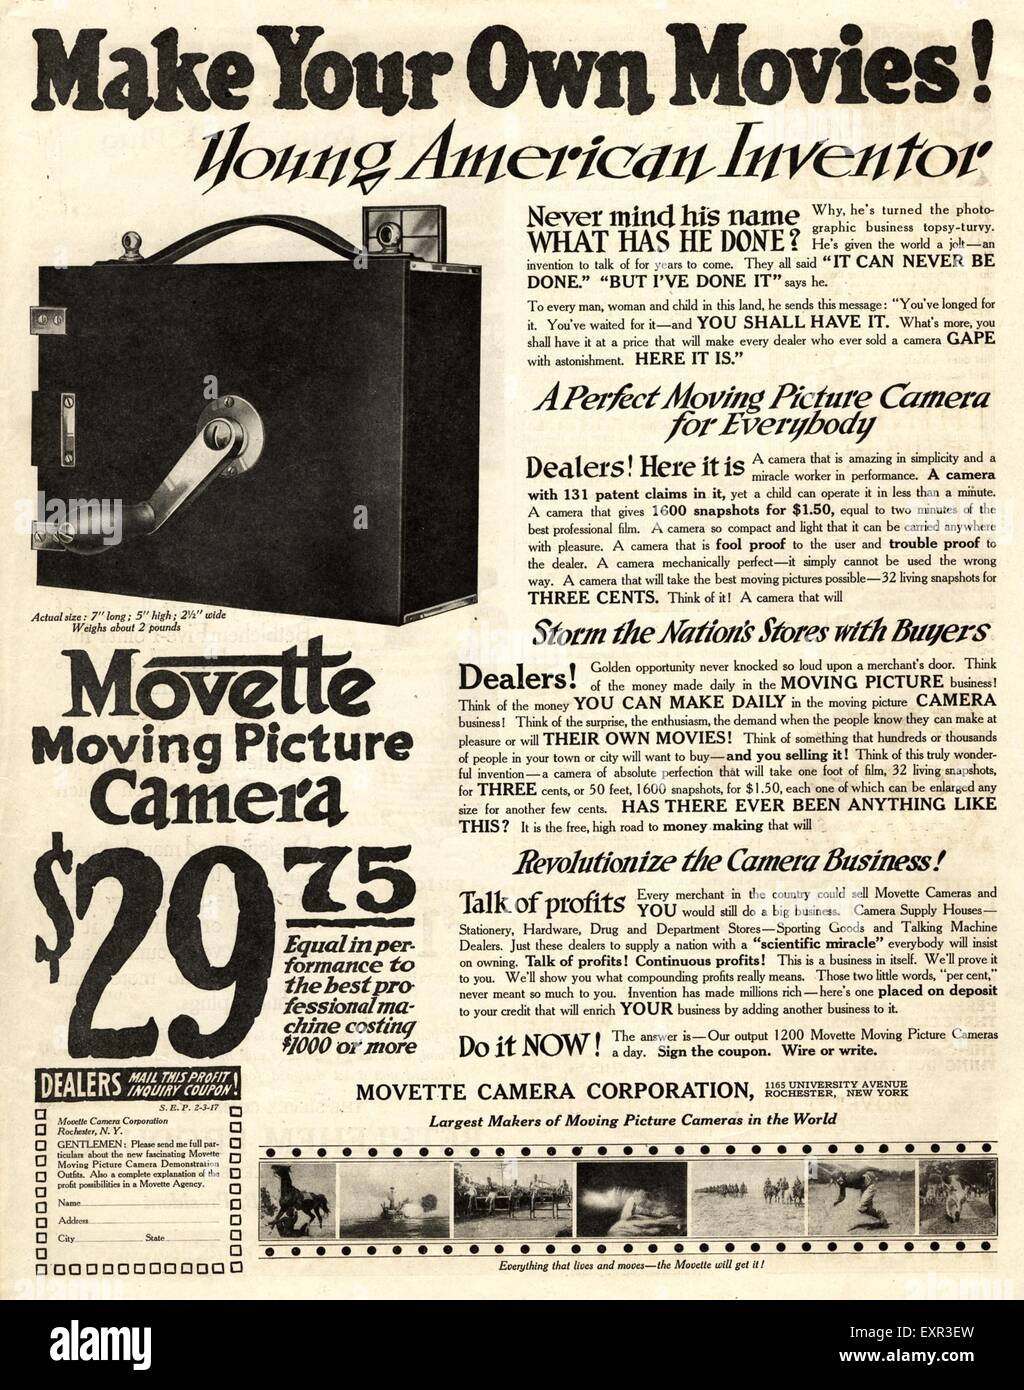 1910s USA Movette Cine Cameras Magazine Advert - Stock Image